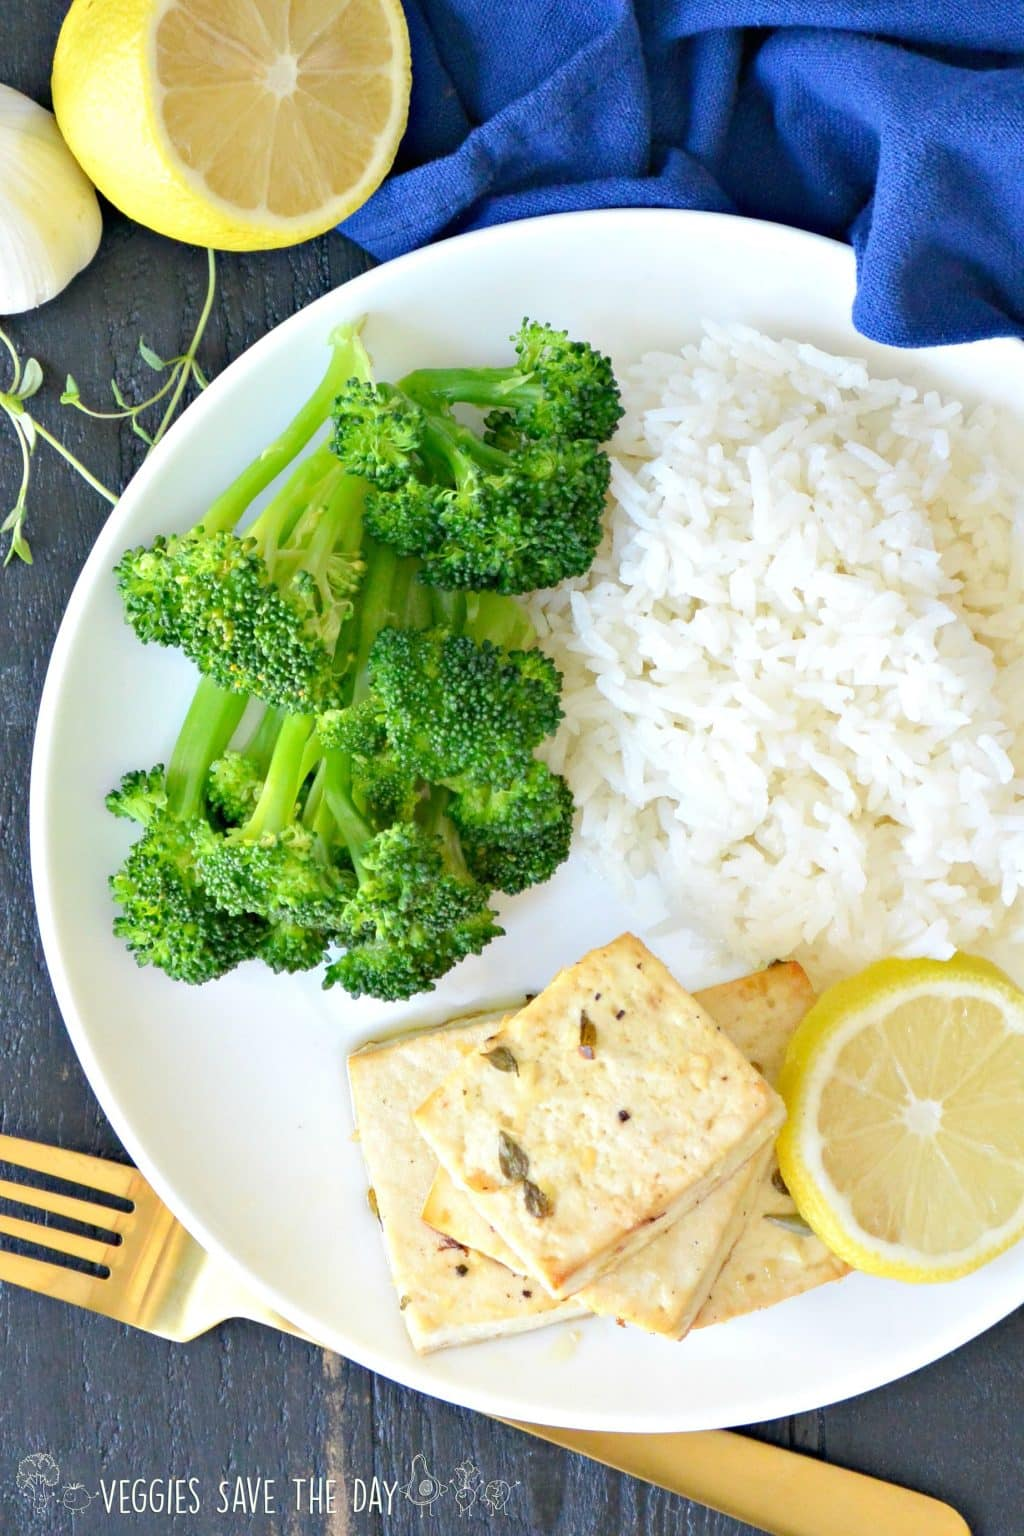 Squares of Lemon Garlic Baked Tofu served with broccoli and rice.